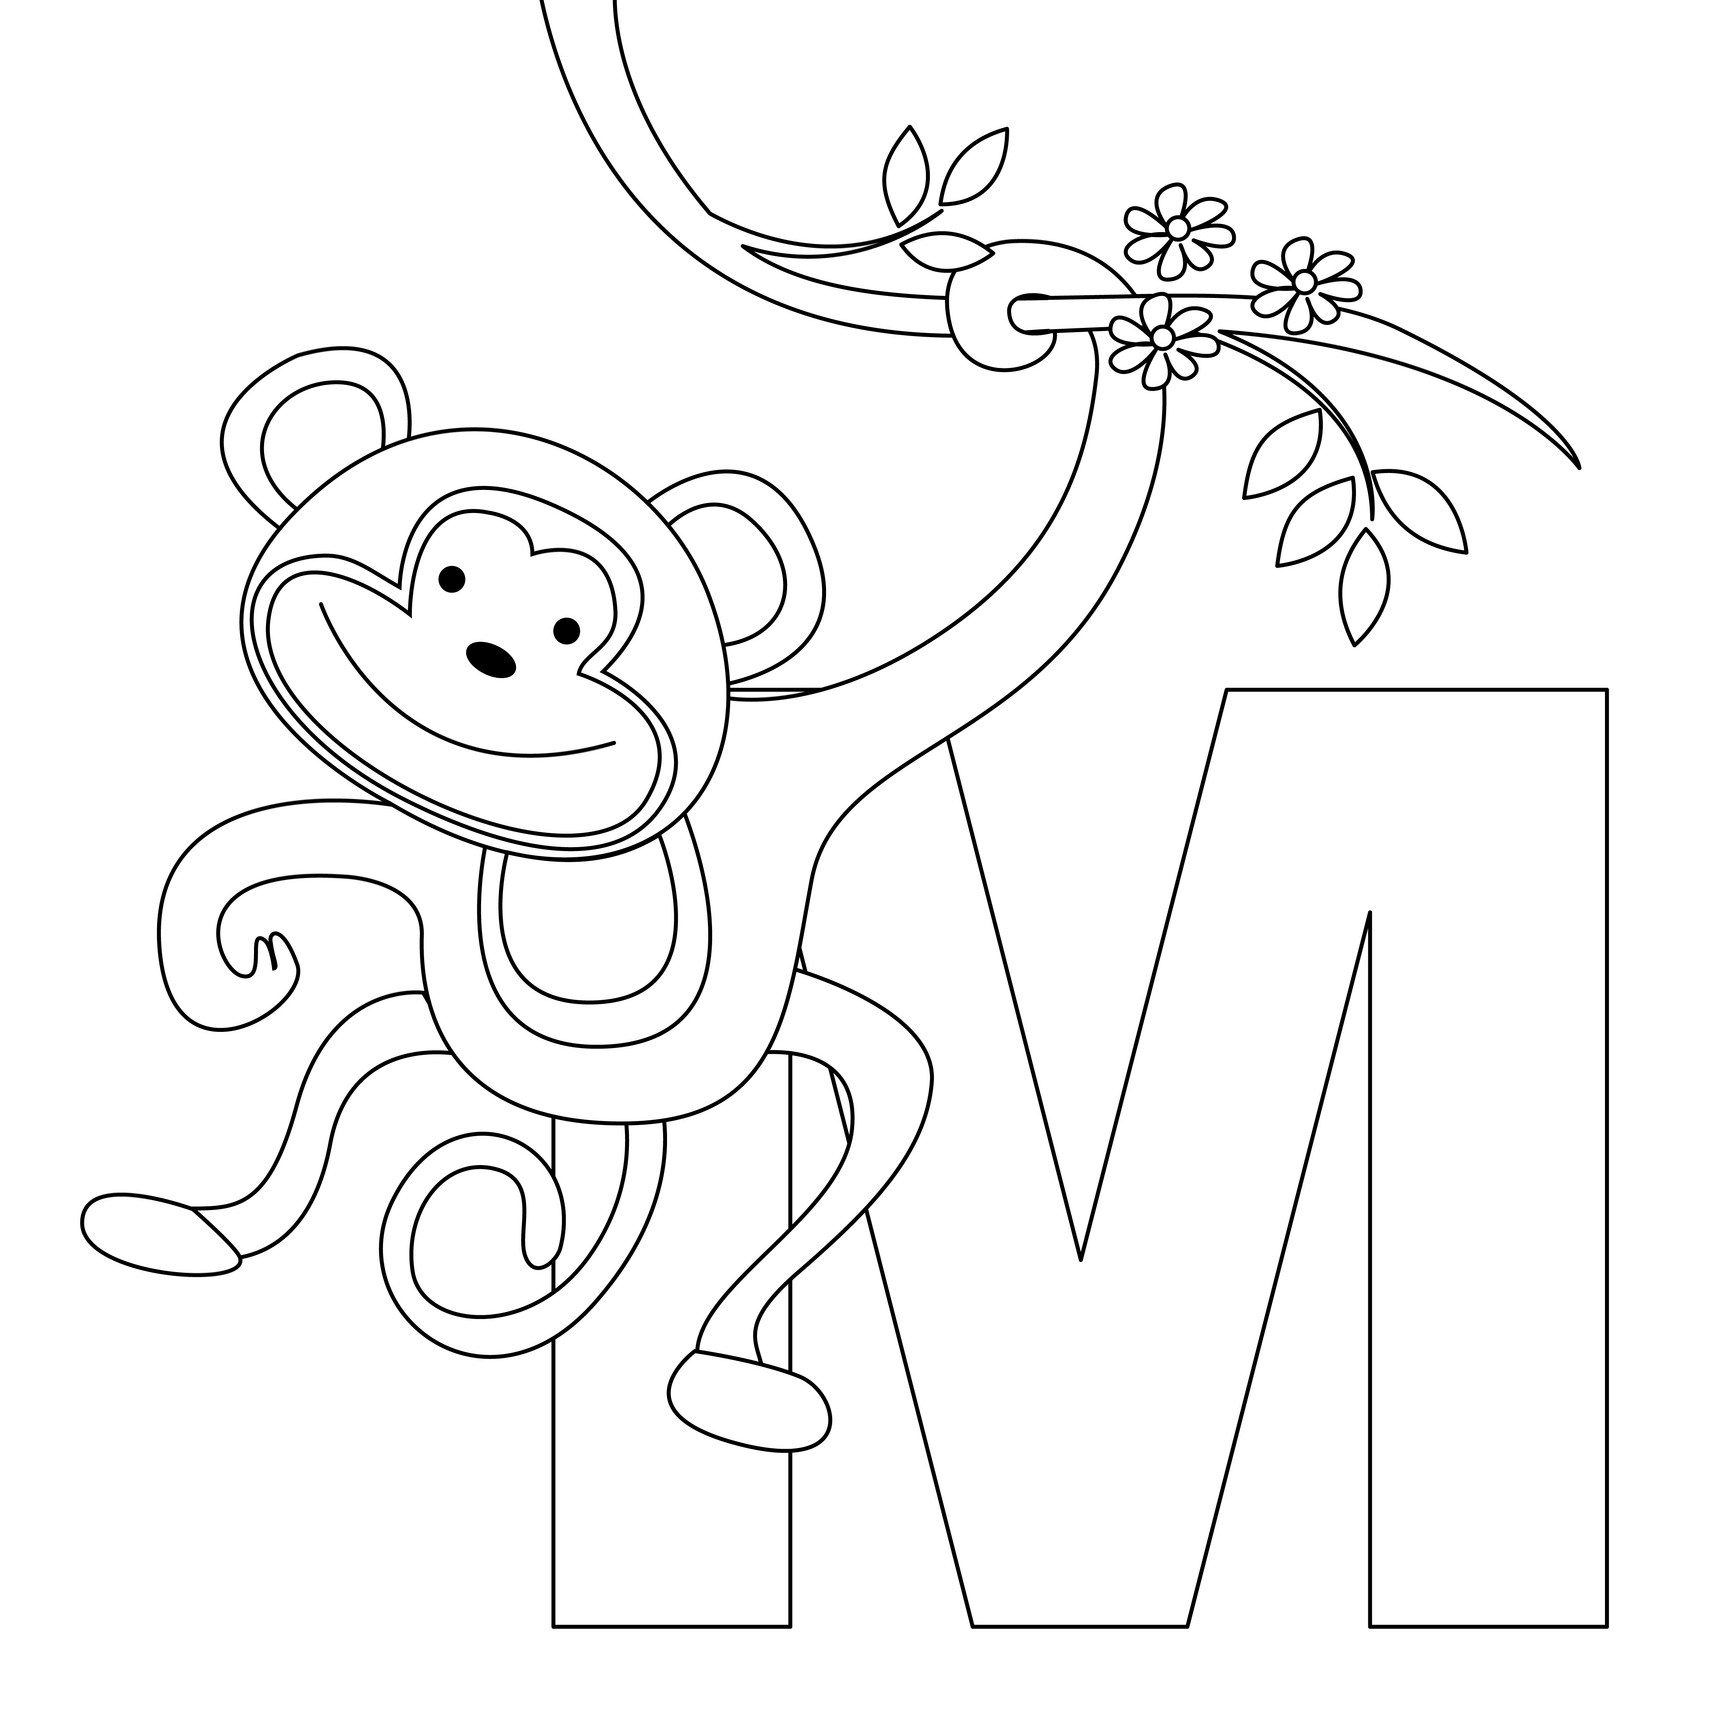 Alphabet Drawing Book at GetDrawings.com | Free for personal use ...